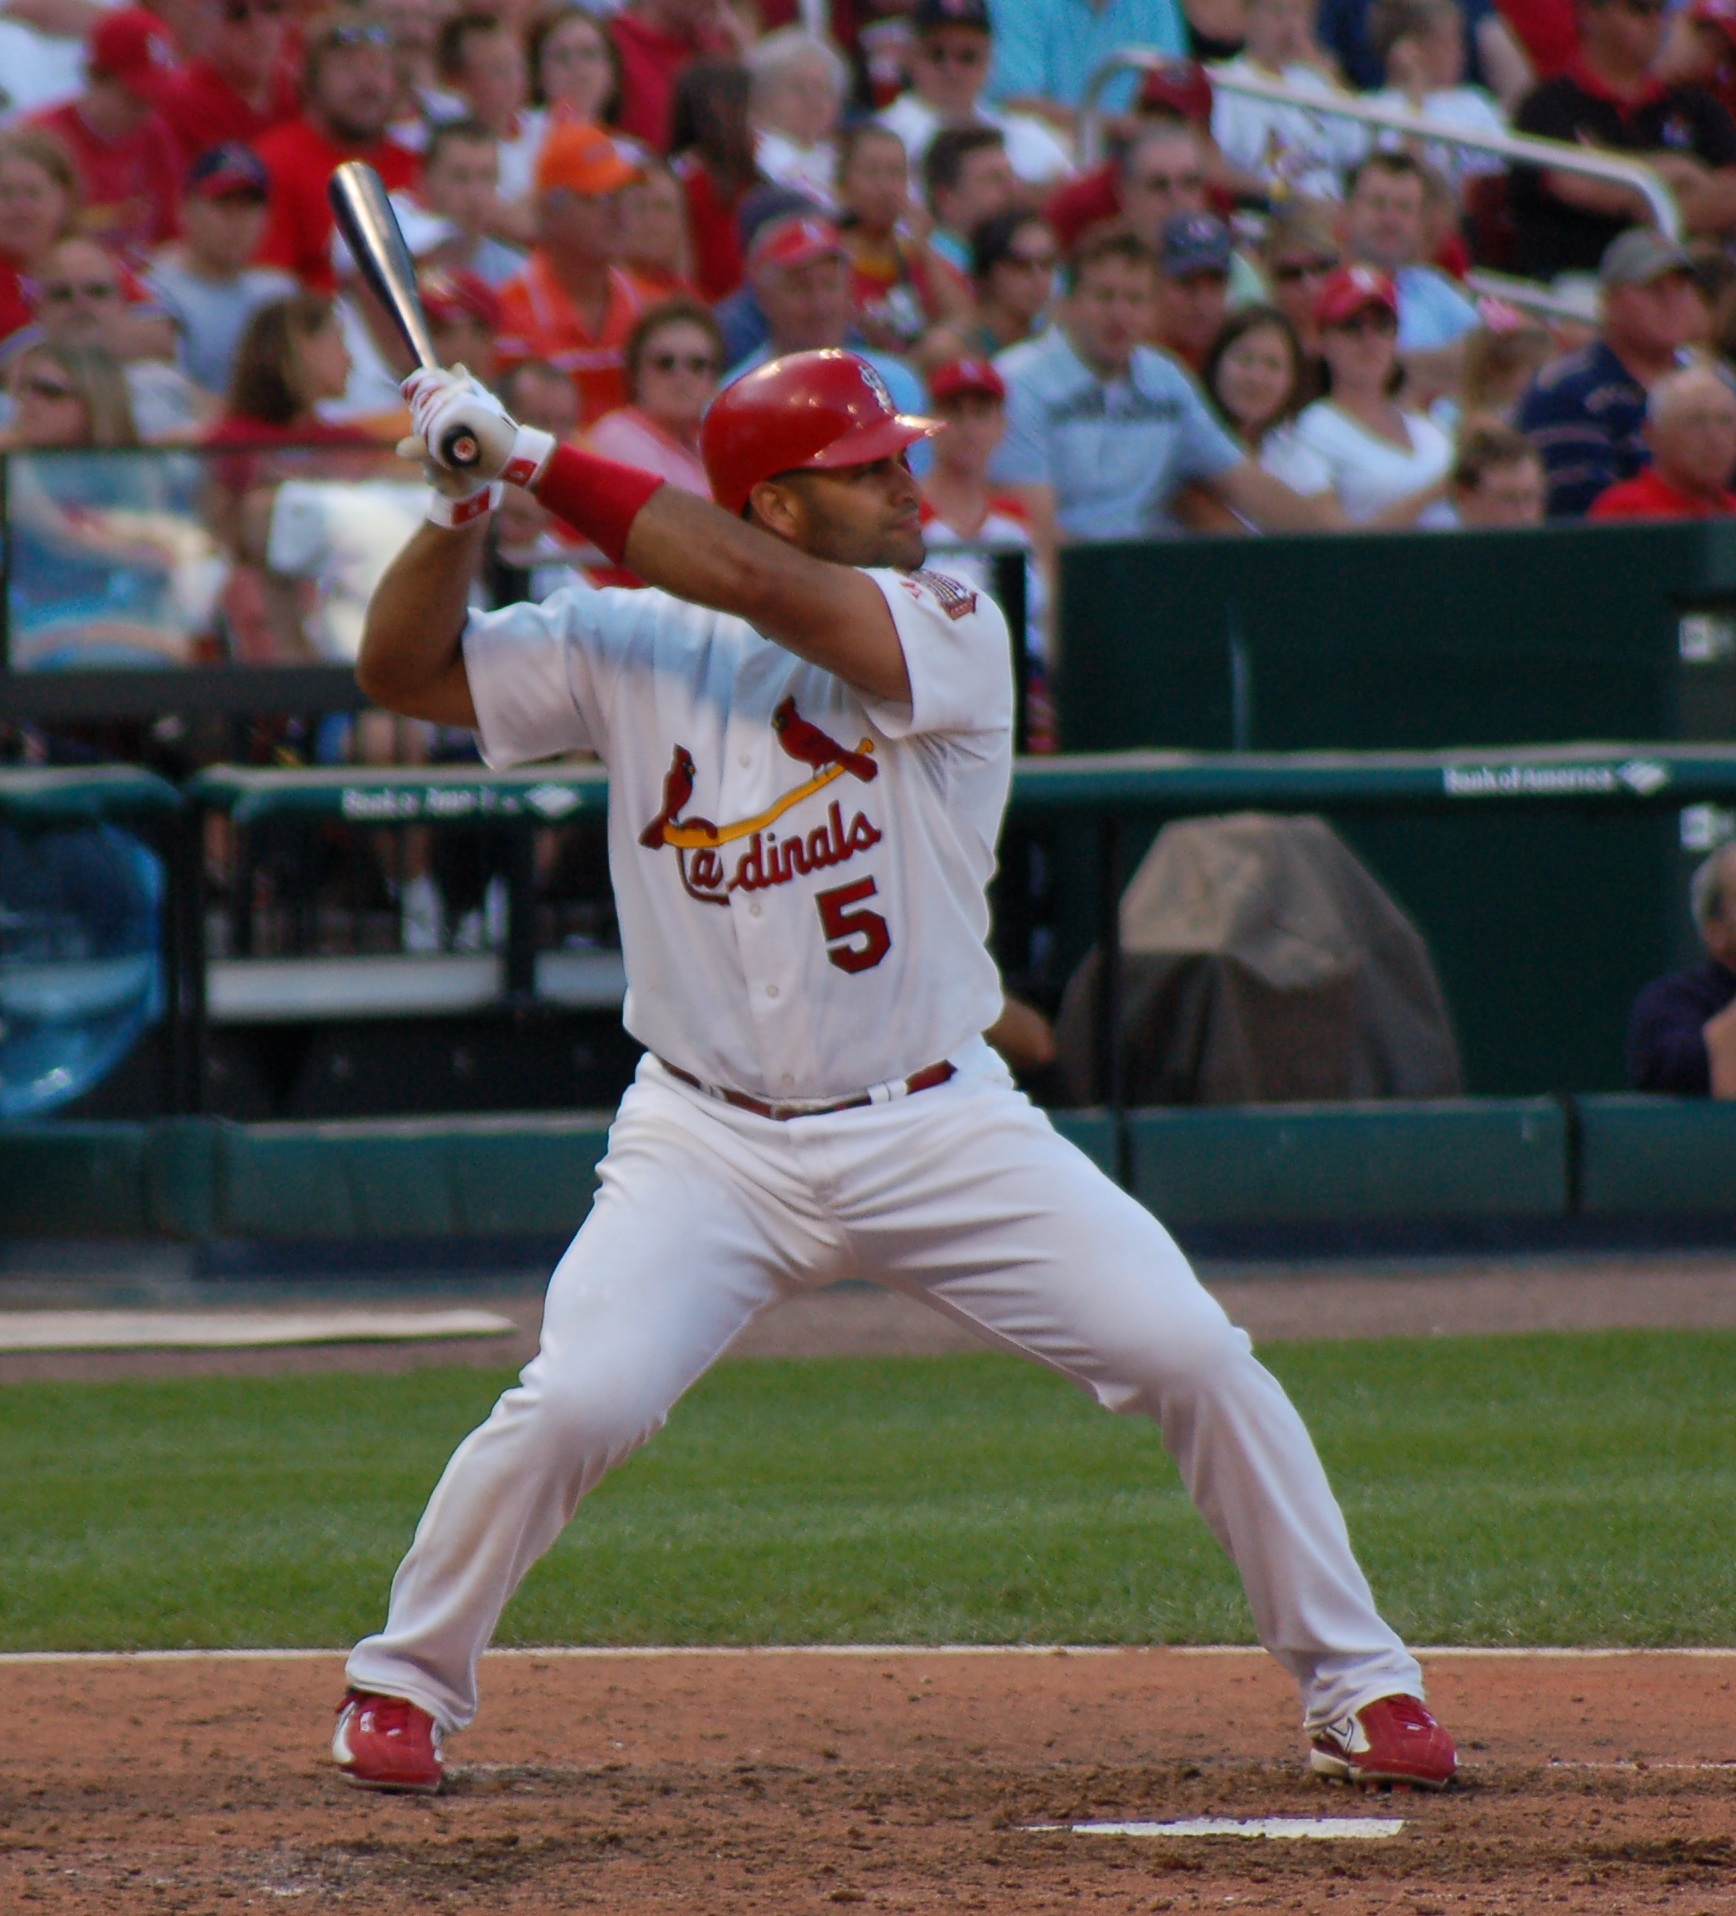 Albert Pujols, Looking in All the wrong Places